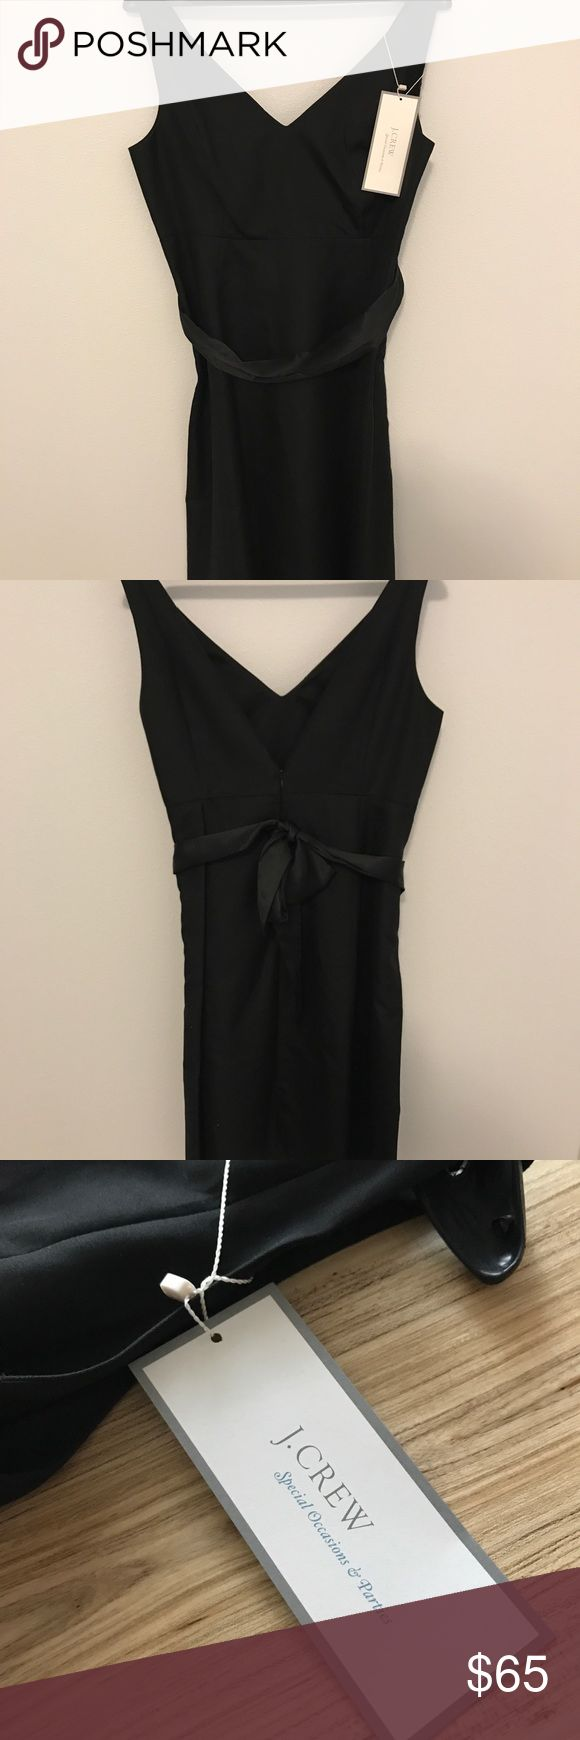 """J. Crew NWT Little Black Cocktail Dress Stunningly beautiful in its simplicity, this little black dress is just what you need for that holiday cocktail party! Brand new with the tags still on, this J.Crew special occasion dress is 100% cotton cady in the """"Lyndsey"""" style. It features """"V""""s in both front and back, and may be worn with or without the black silk sash which attaches via a single discrete loop  at the back waist. Fully lined, size petite 12. Consult online J. Crew size guide for…"""